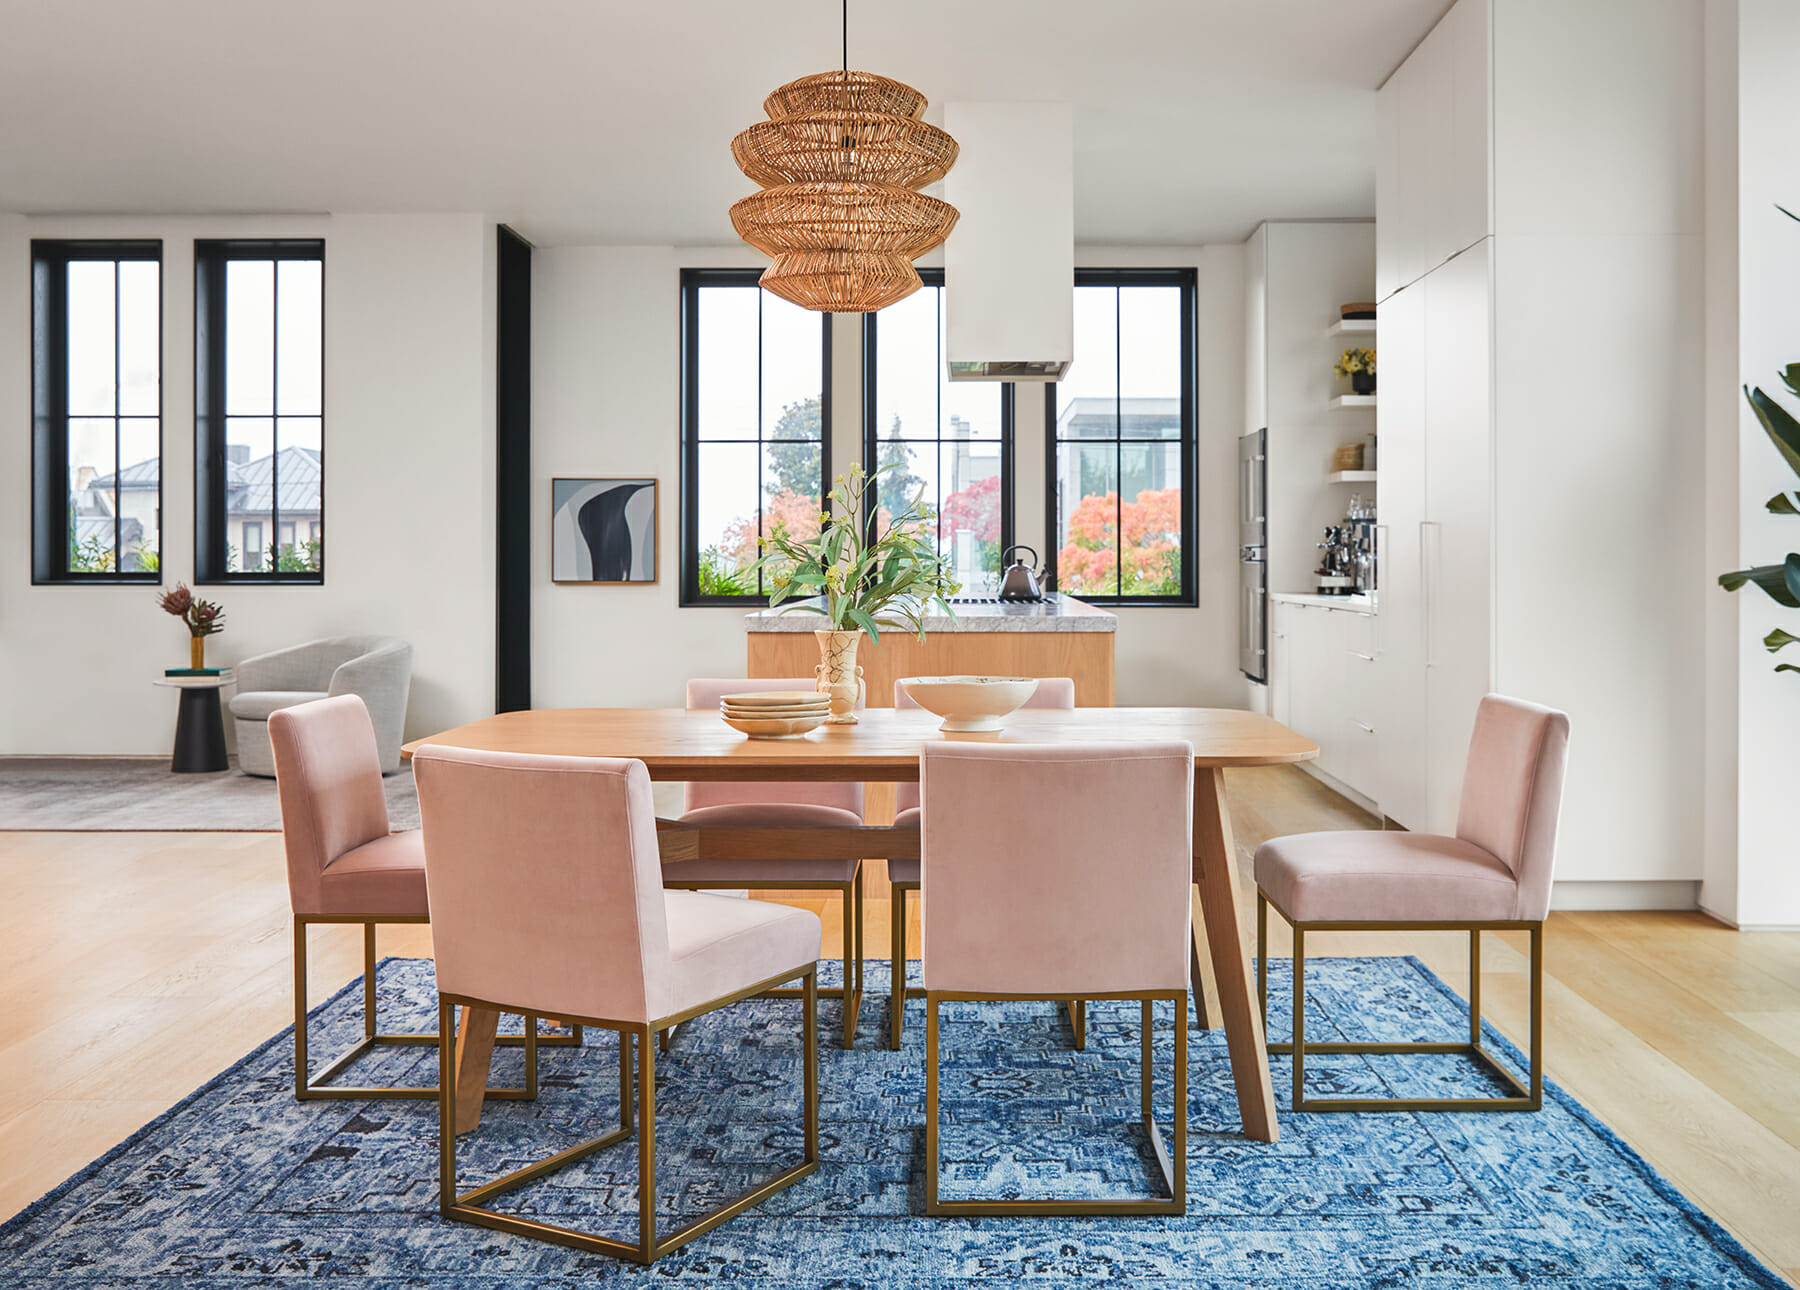 The blue Zakra Rug is shown with light pink Oscuro dining chairs.